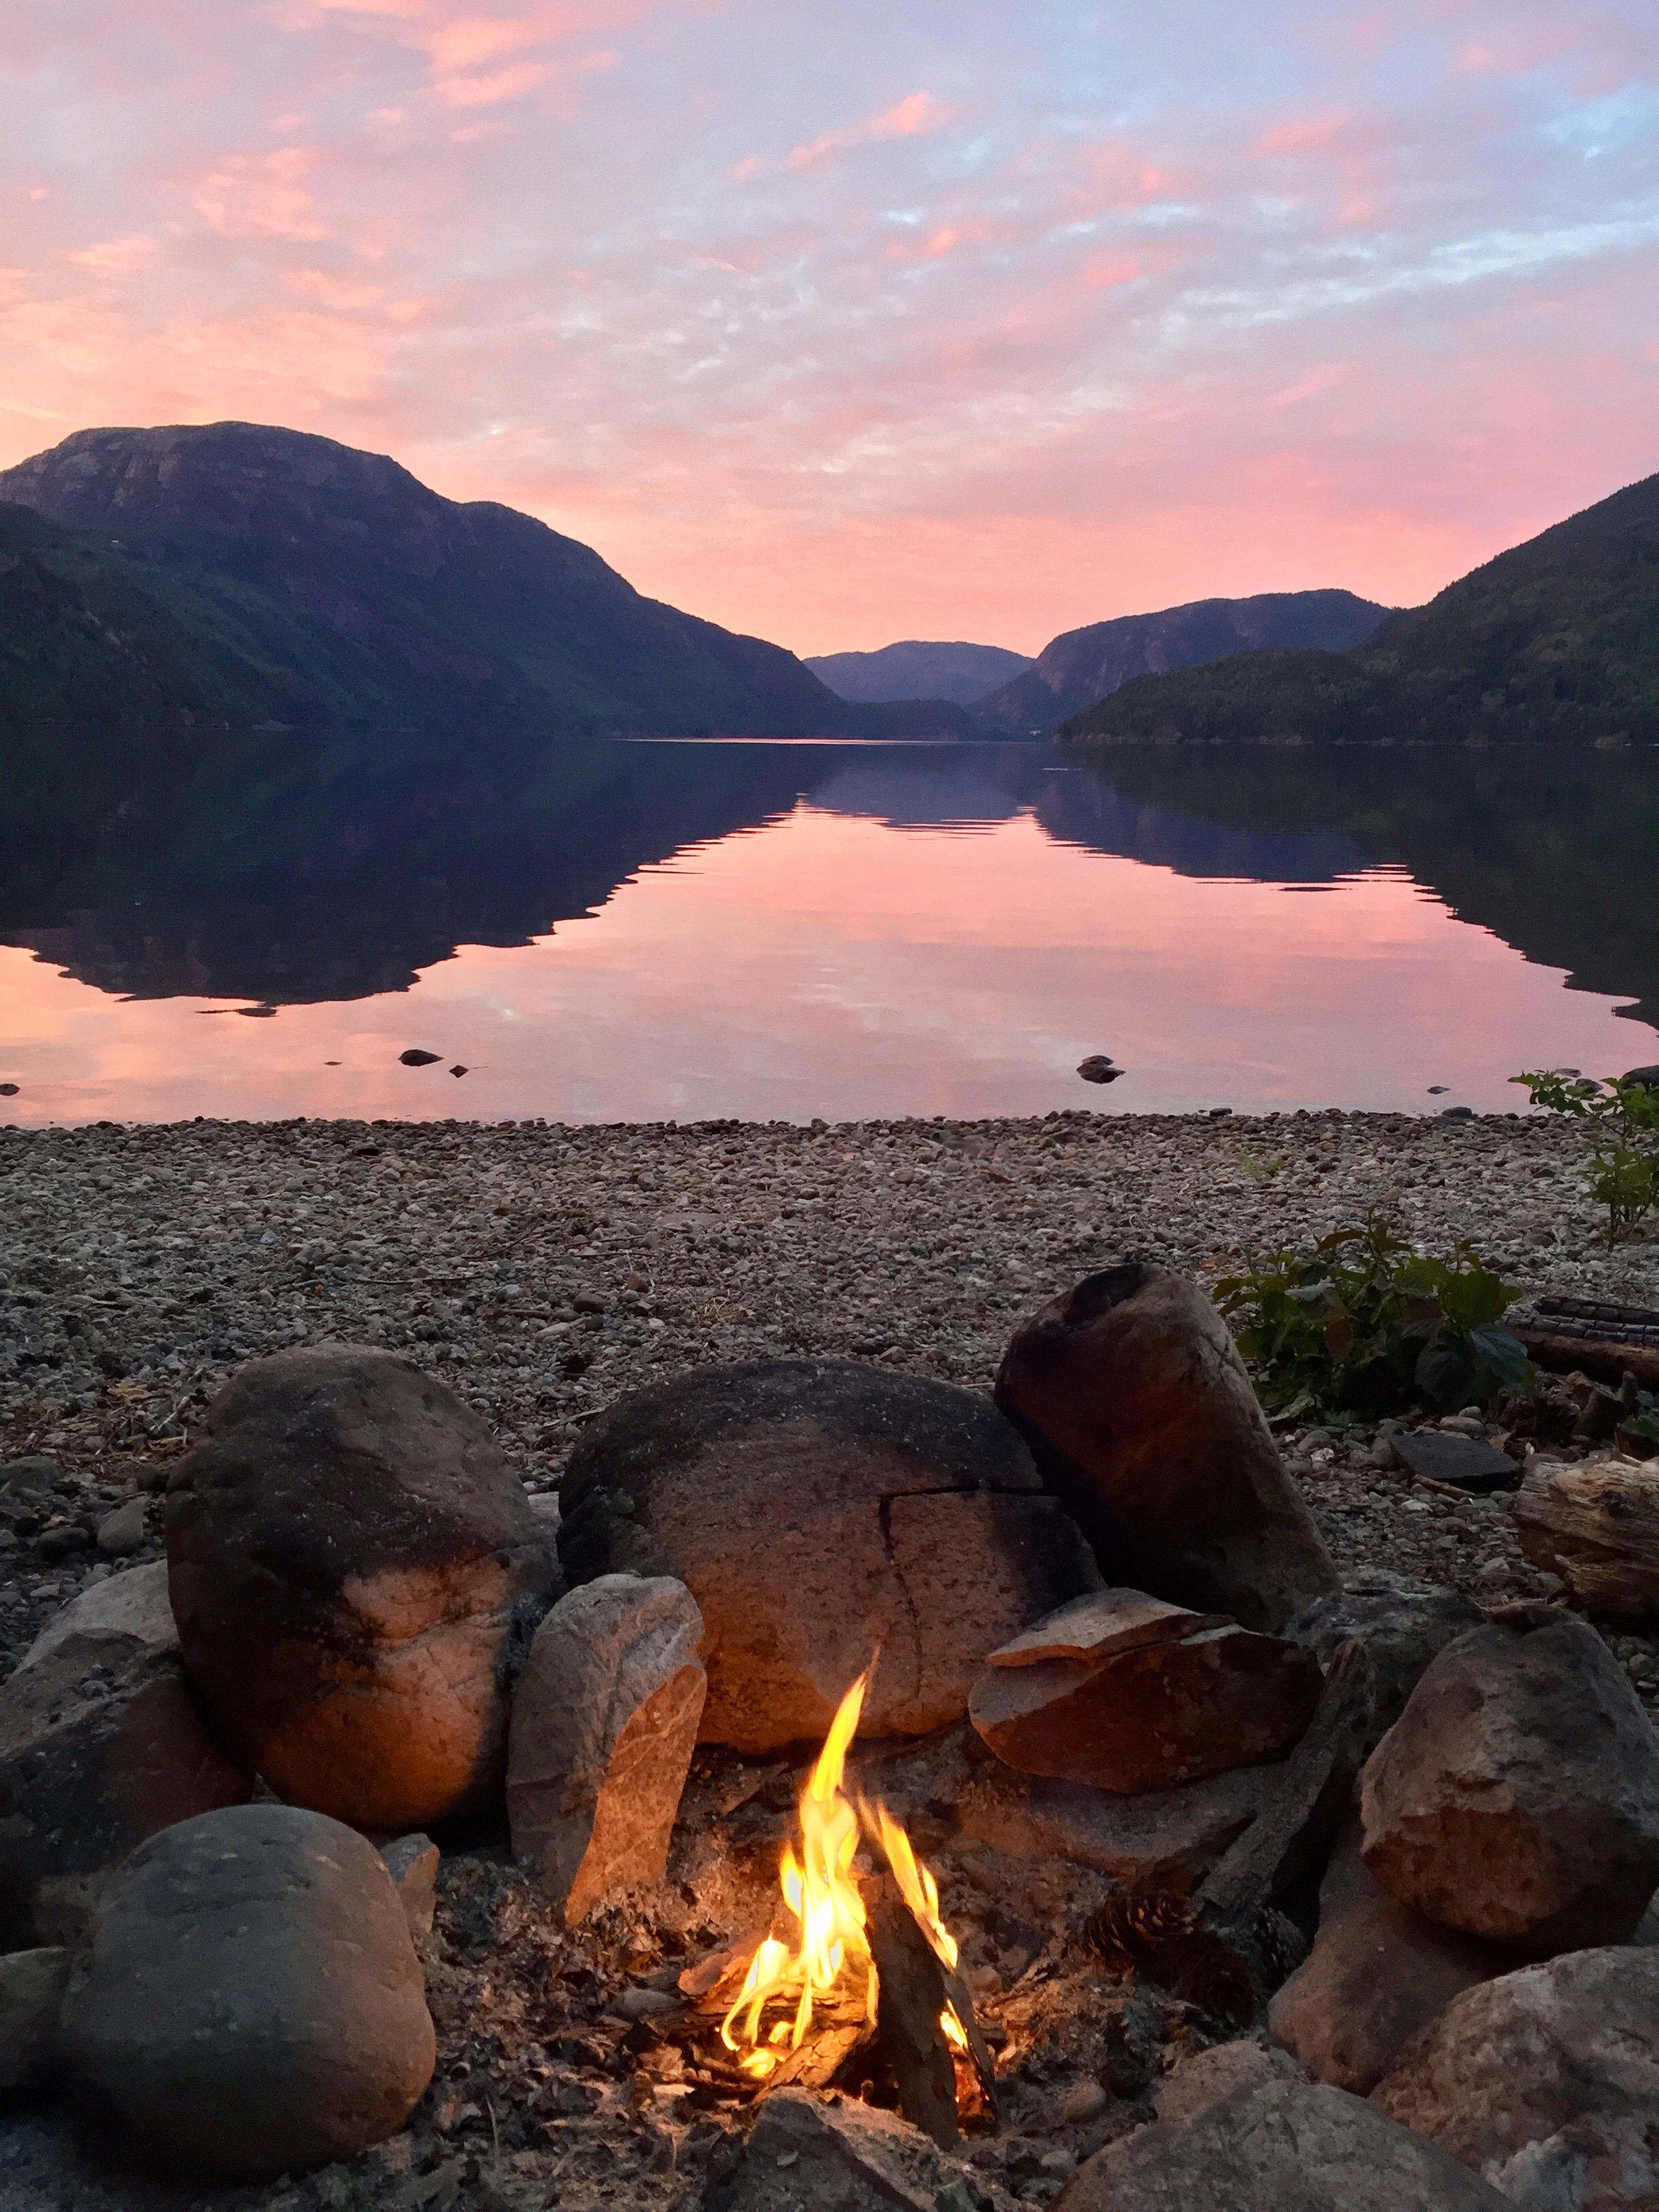 A campfire, looking out over the water early in the morning